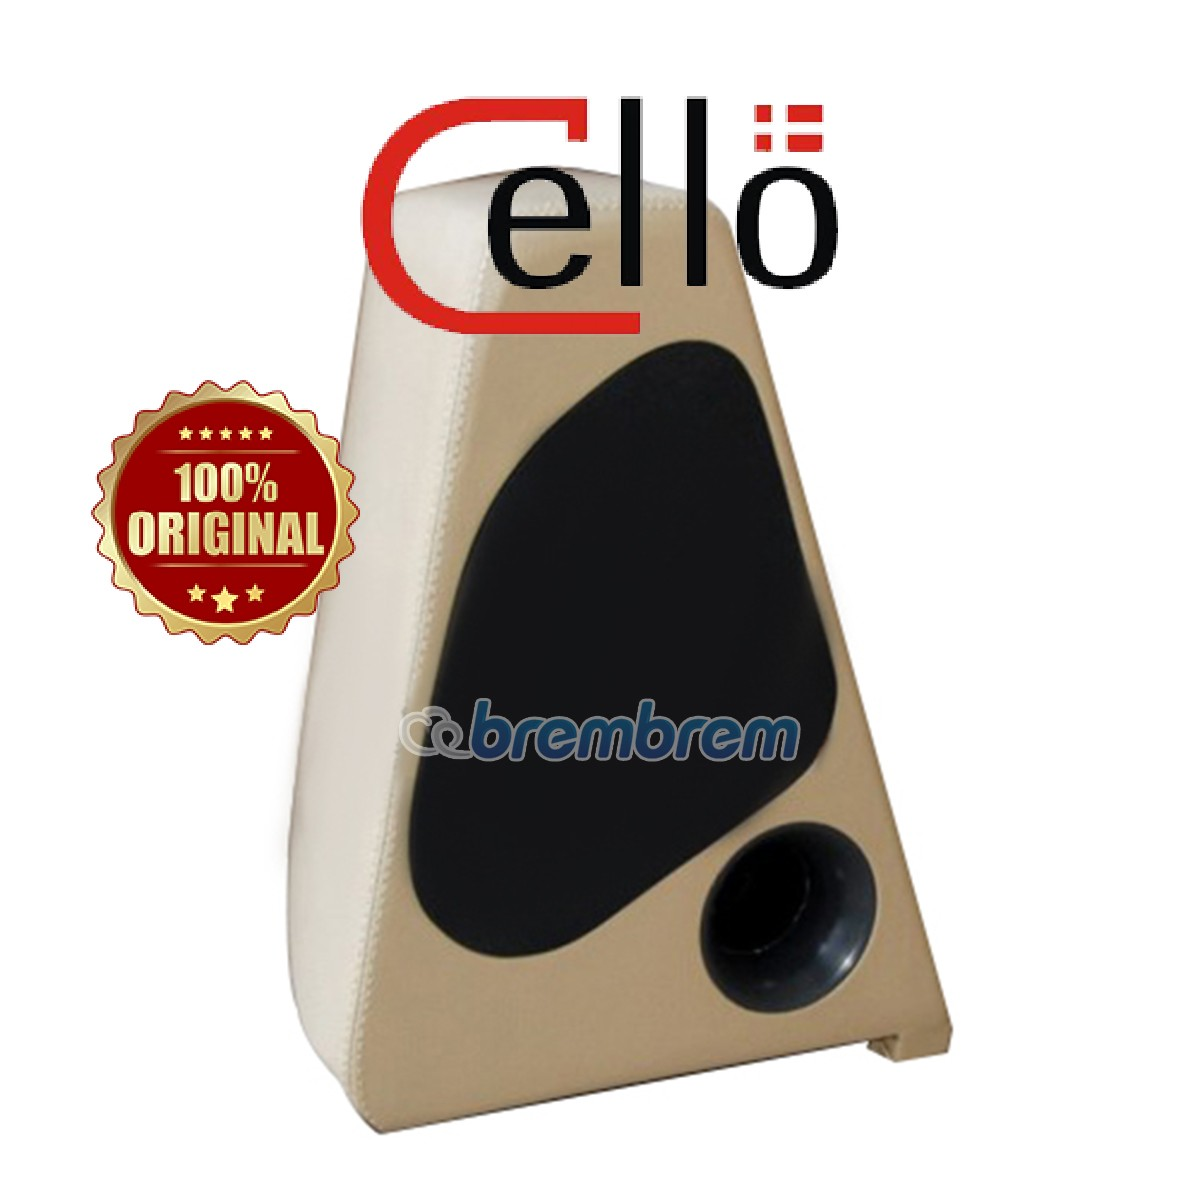 CELLO SOLUTION FOR SUZUKI ERTIGA - SUBWOOFER AKTIF